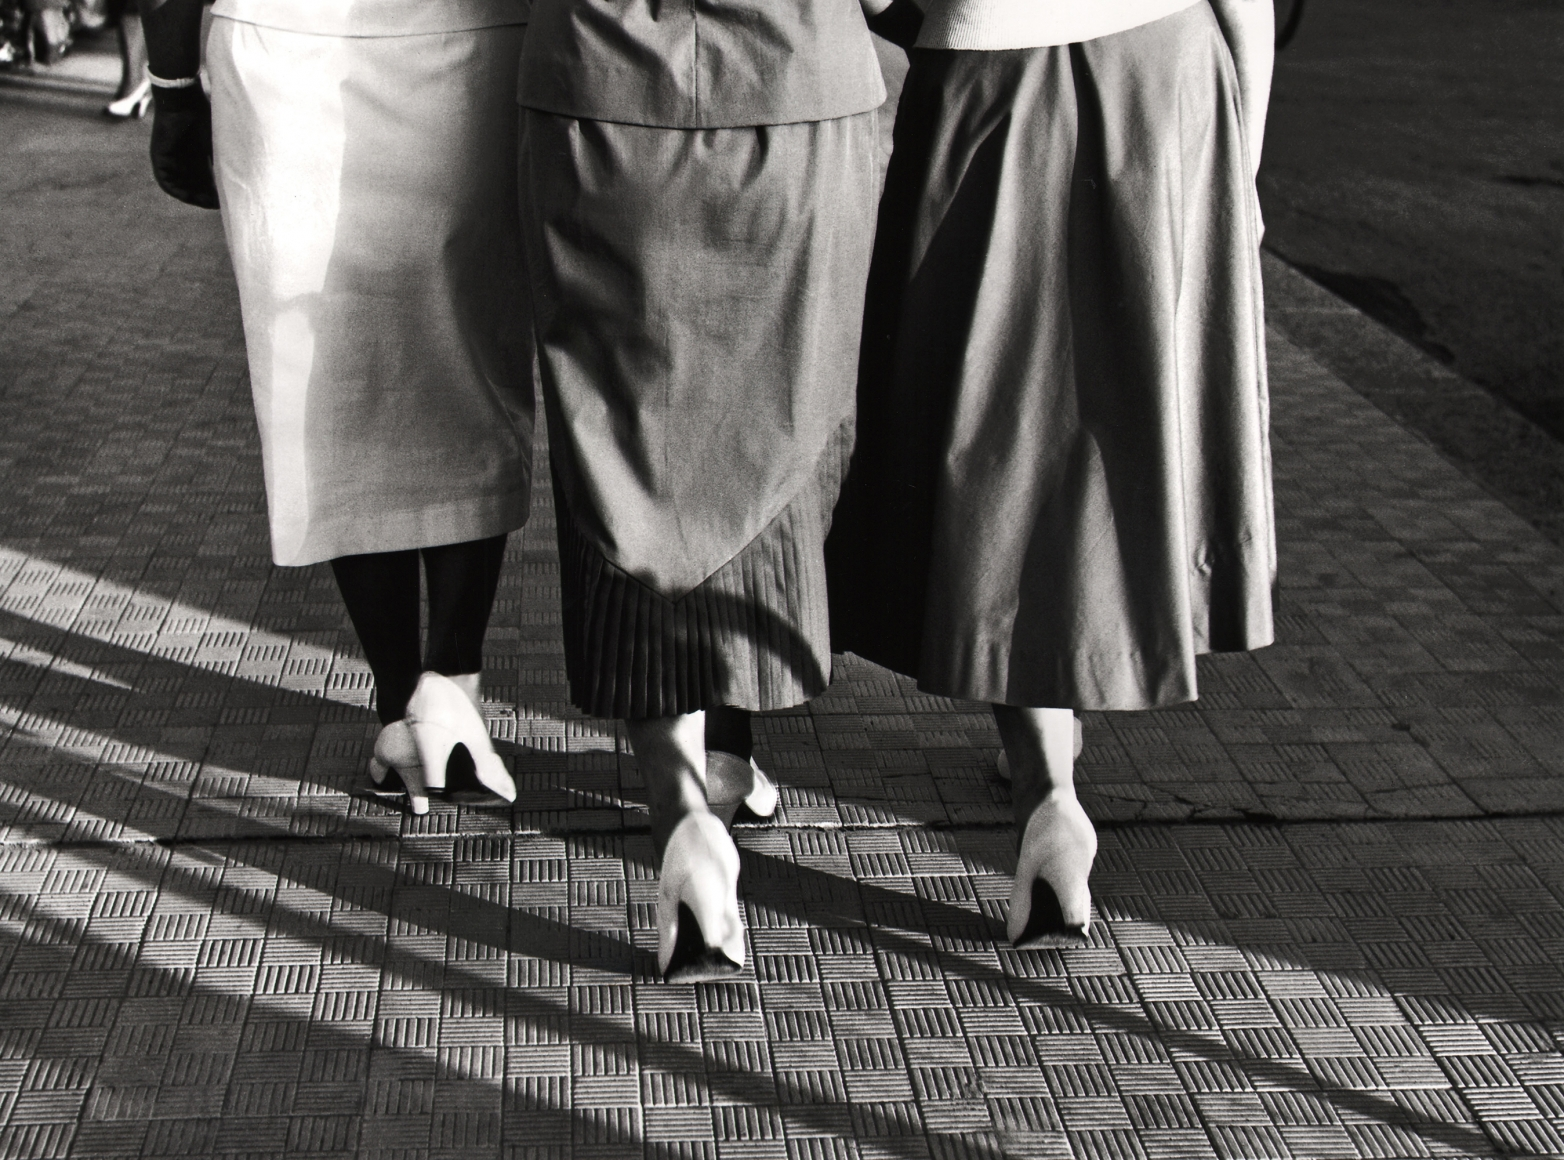 Nino Migliori, White Shoes, 1951. Three women photographed from behind from the waist down in matching white heels.